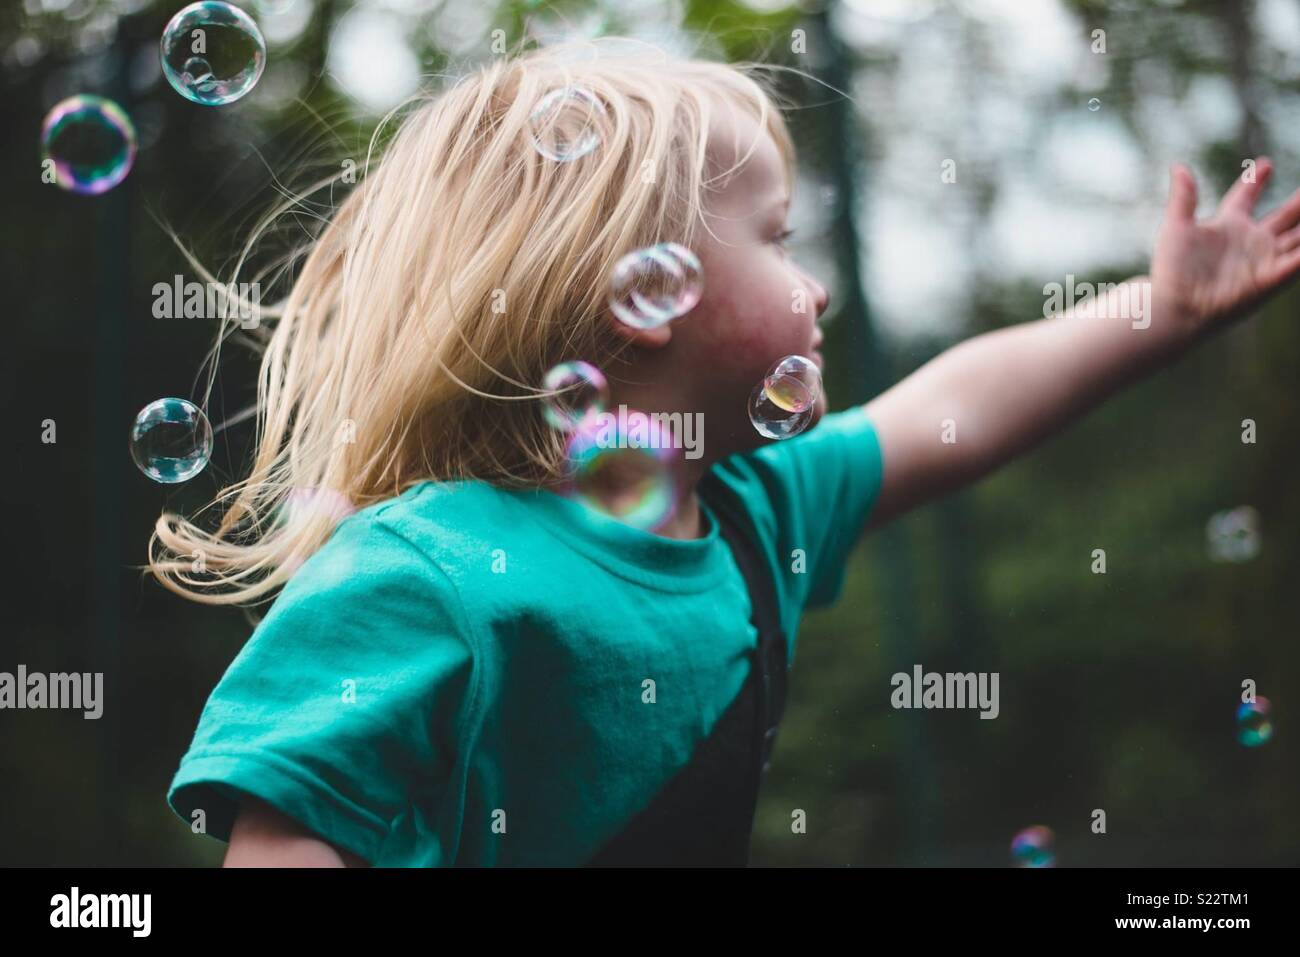 Bubbles - Stock Image